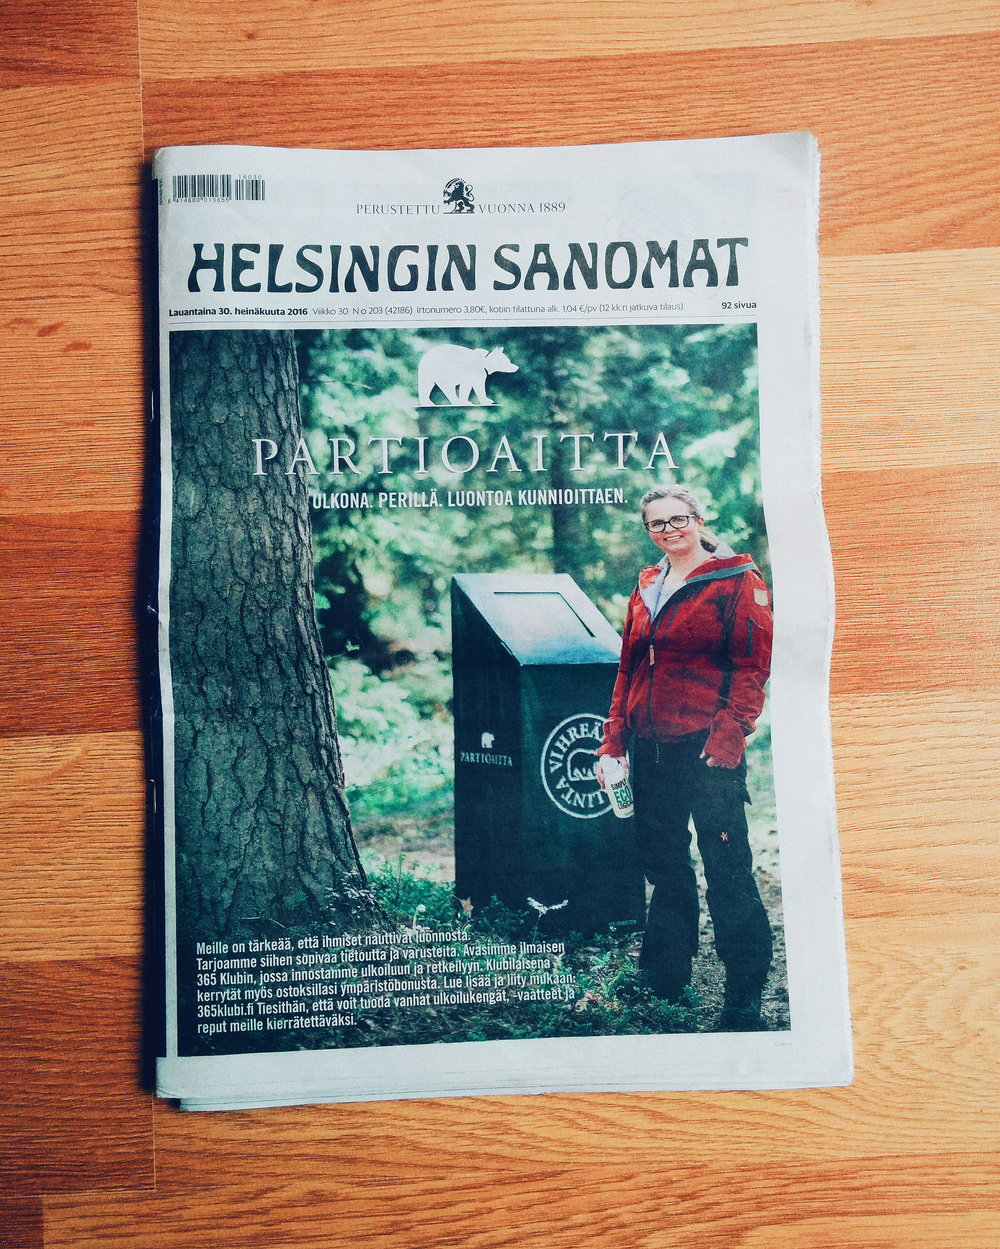 One of my photos for Partioaitta on the front cover of Helsingin Sanomat.